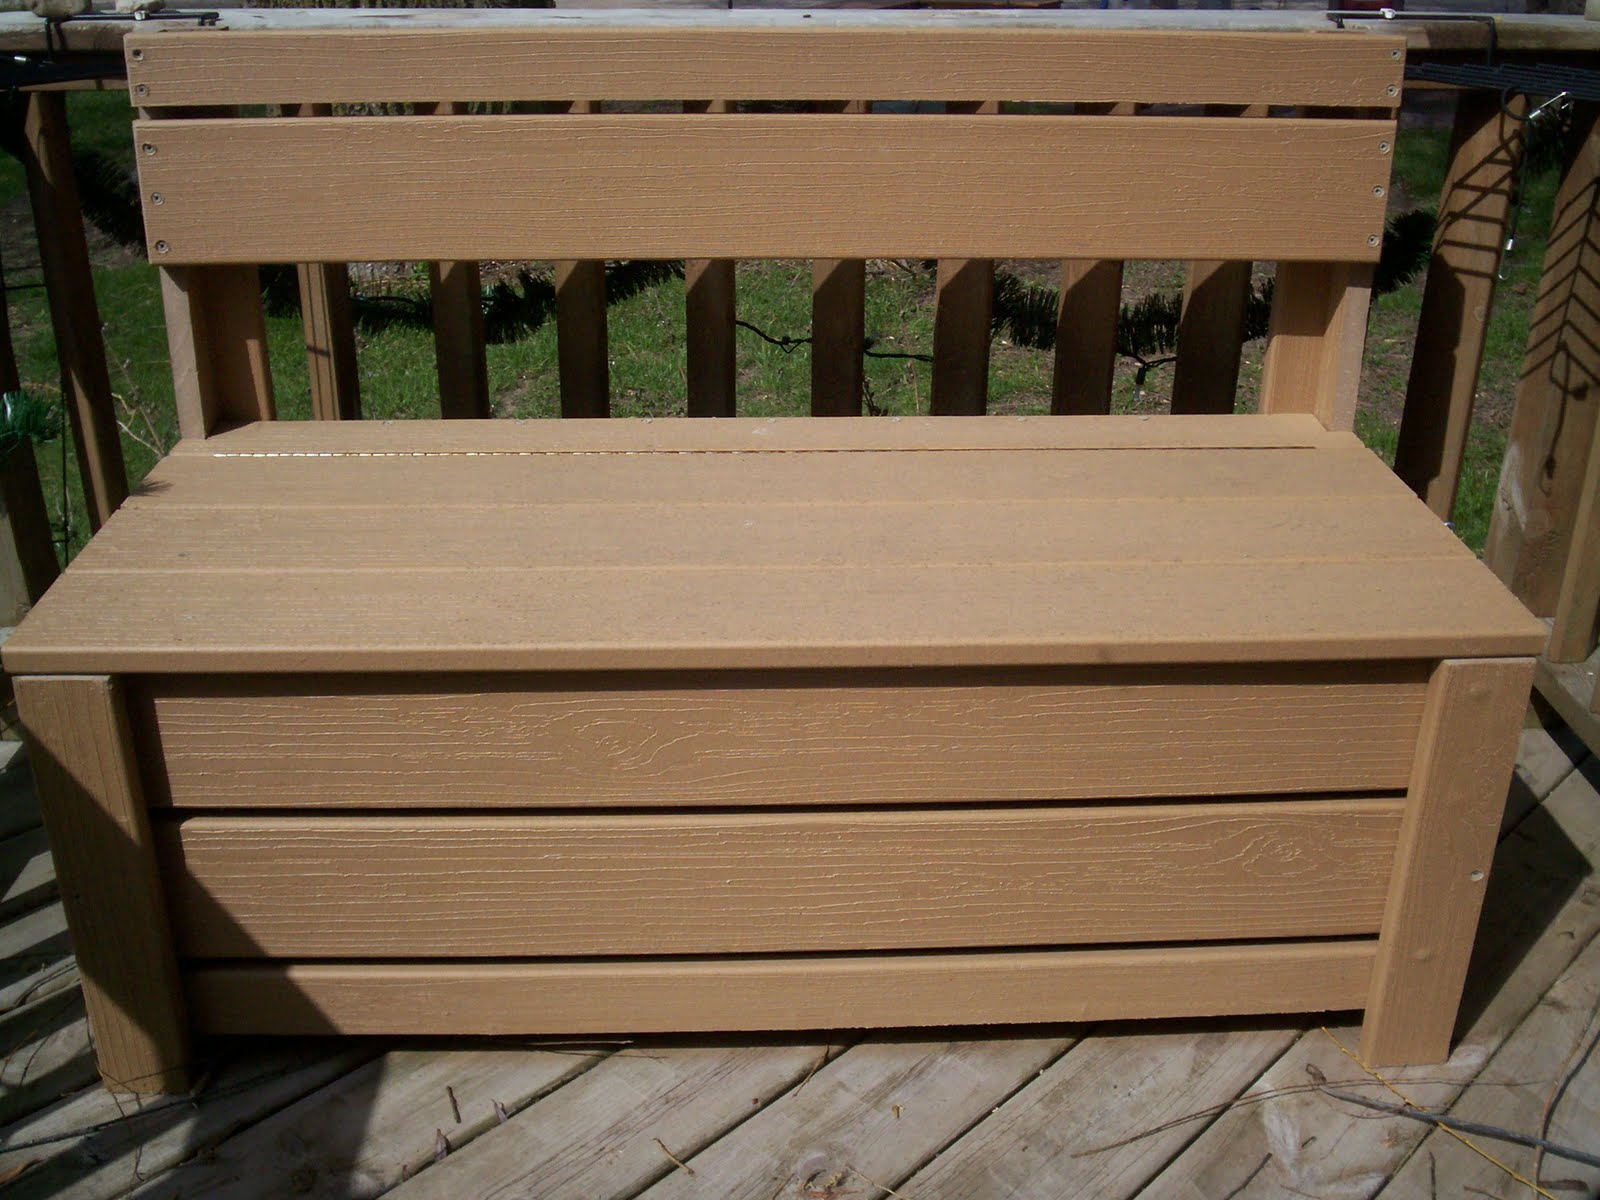 Unique Shoe Storage Bench Plans  Bing Images